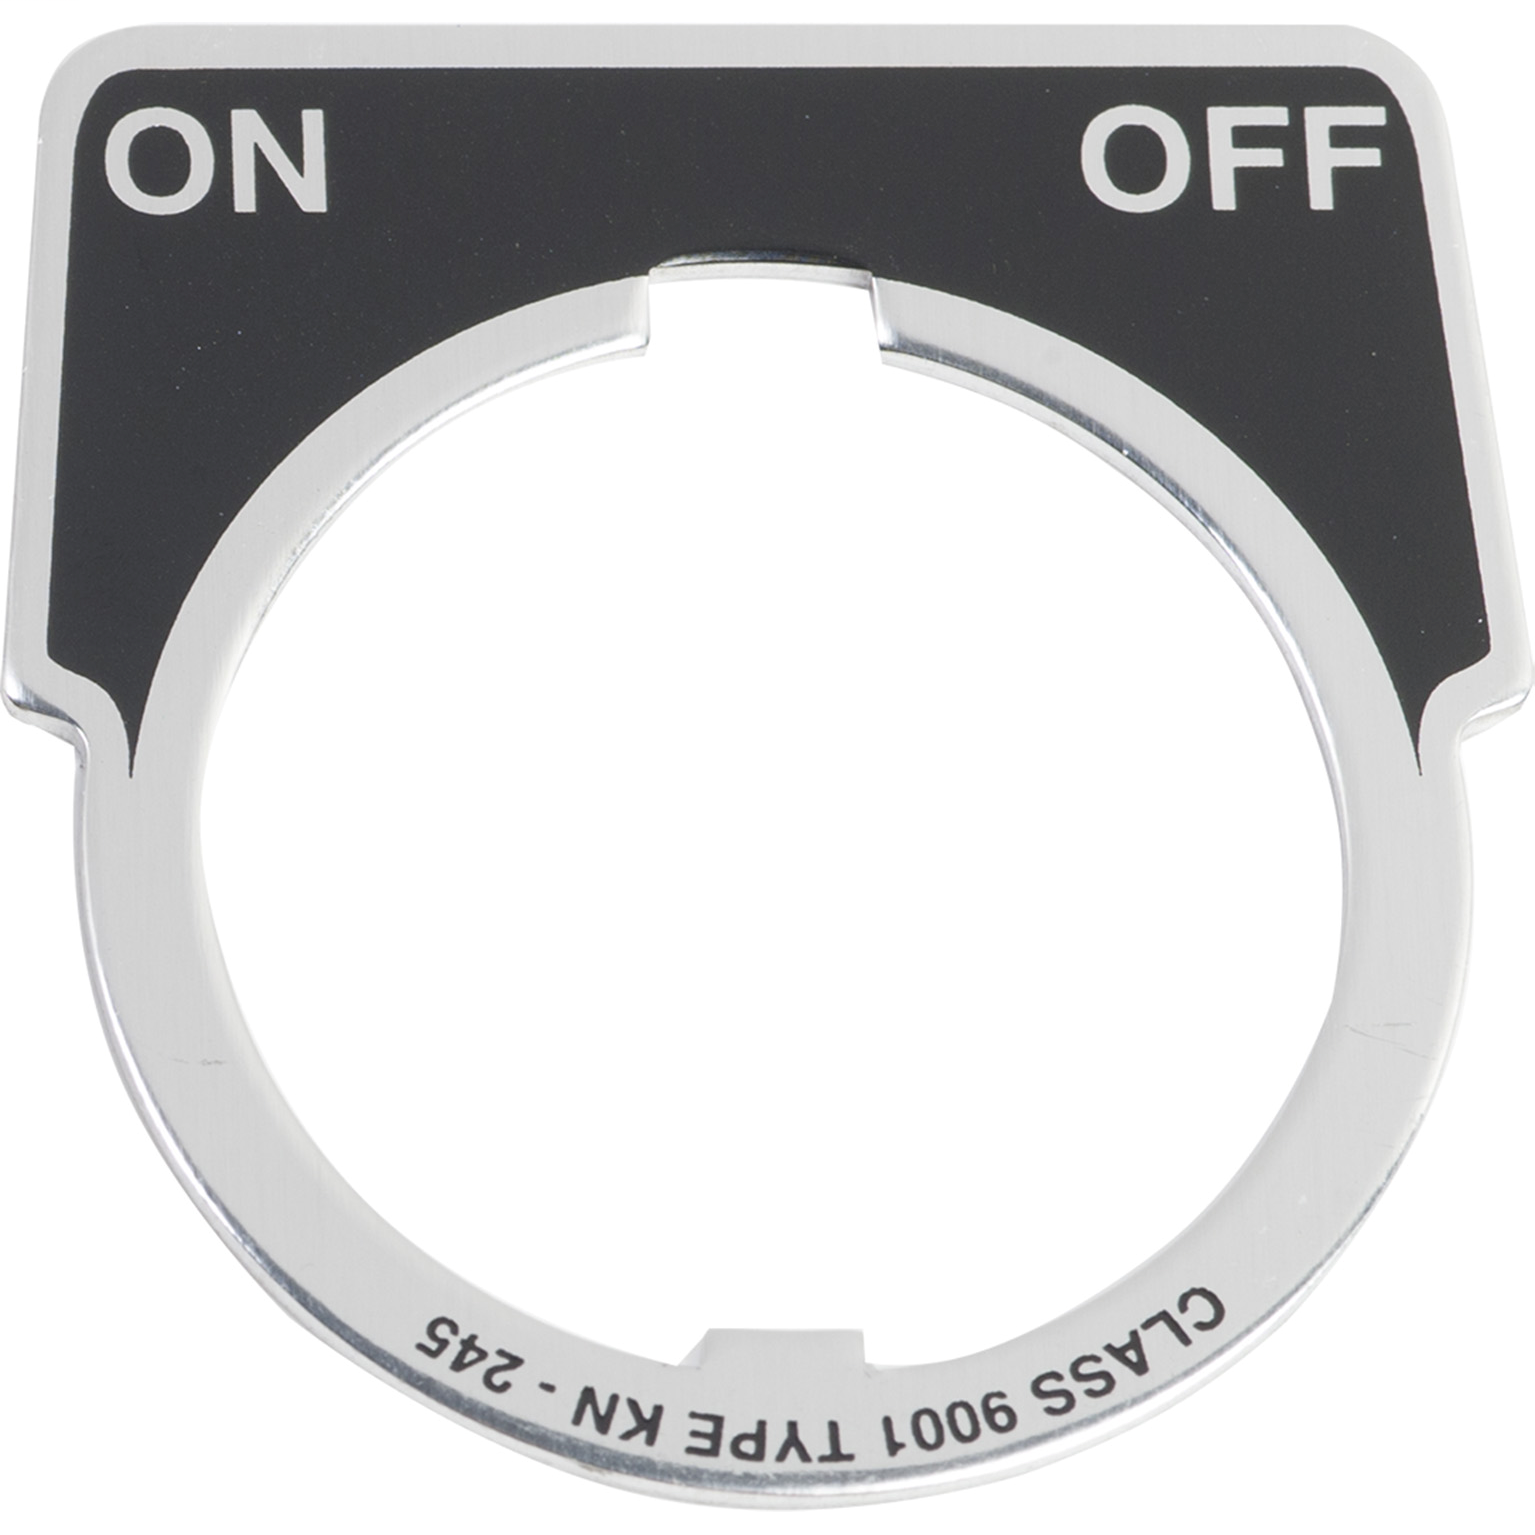 SQUARE D 30mm Push Button, Type K, aluminum legend plate, black, marked ON OFF